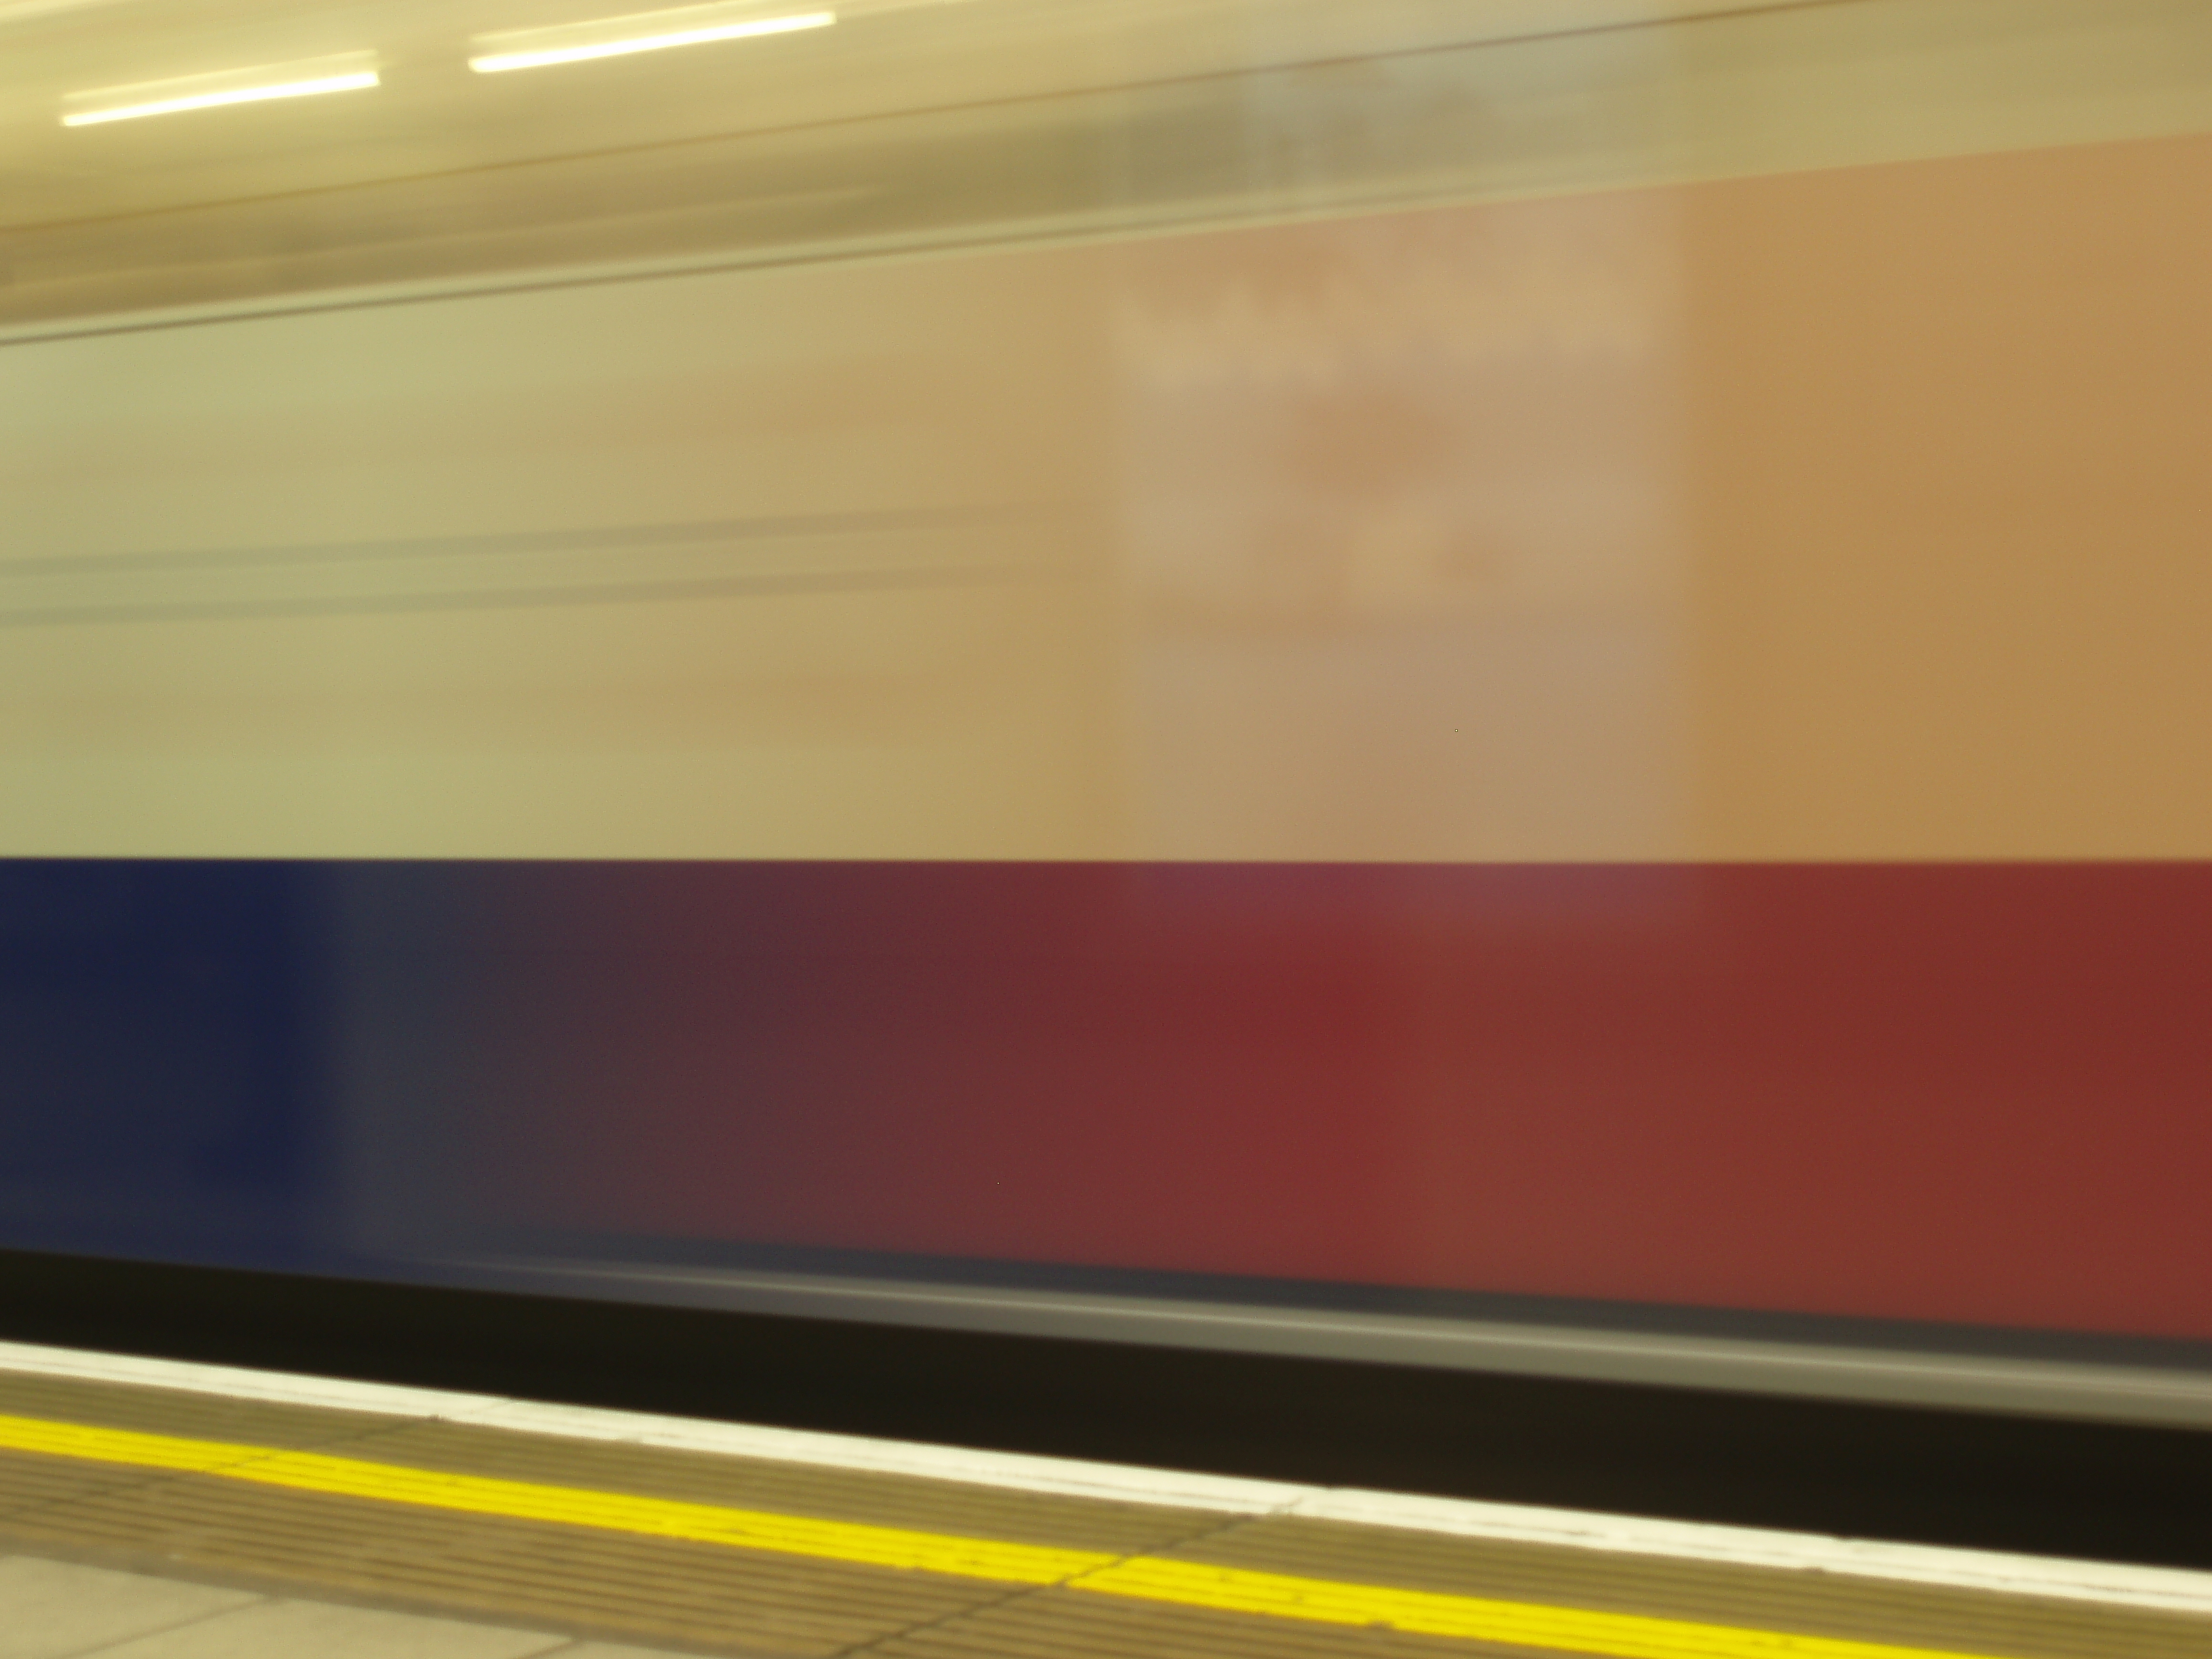 abstract image of a train passing a platform